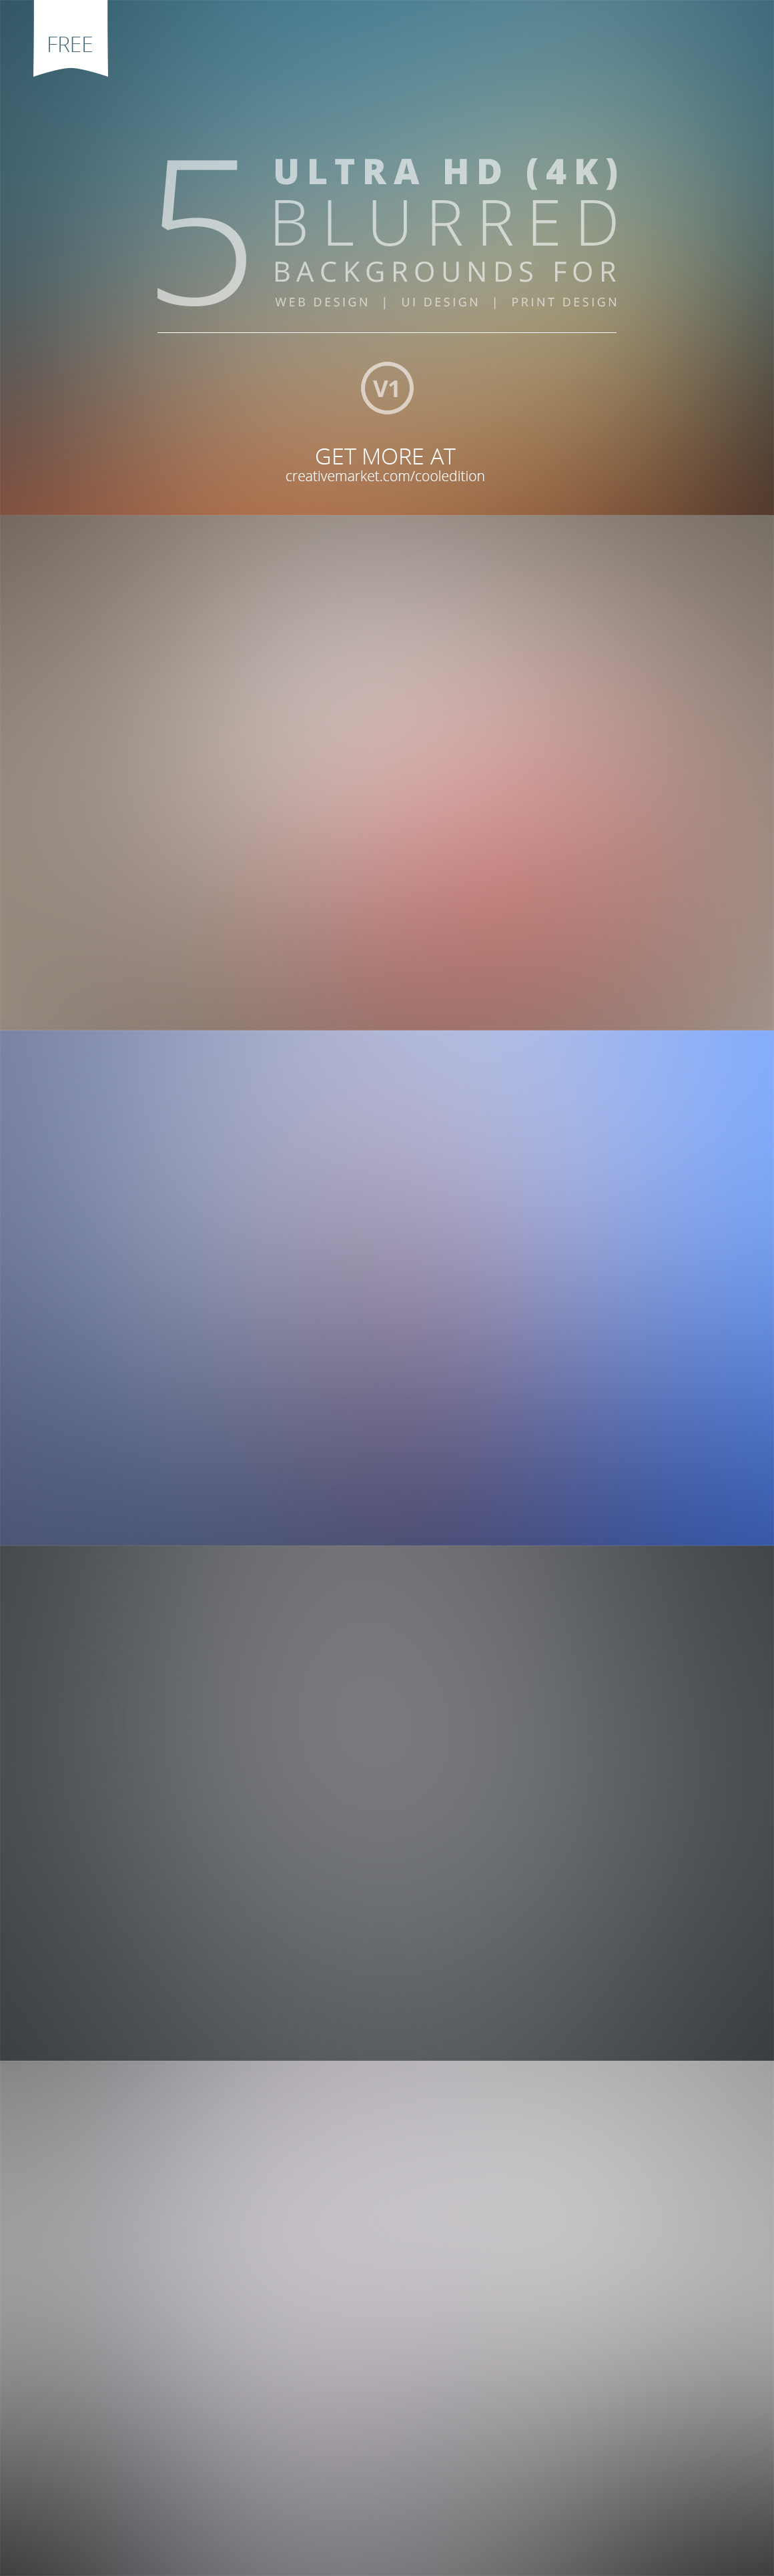 FREE - 5 Ultra HD Blurred Backgrounds v1 by cooledition